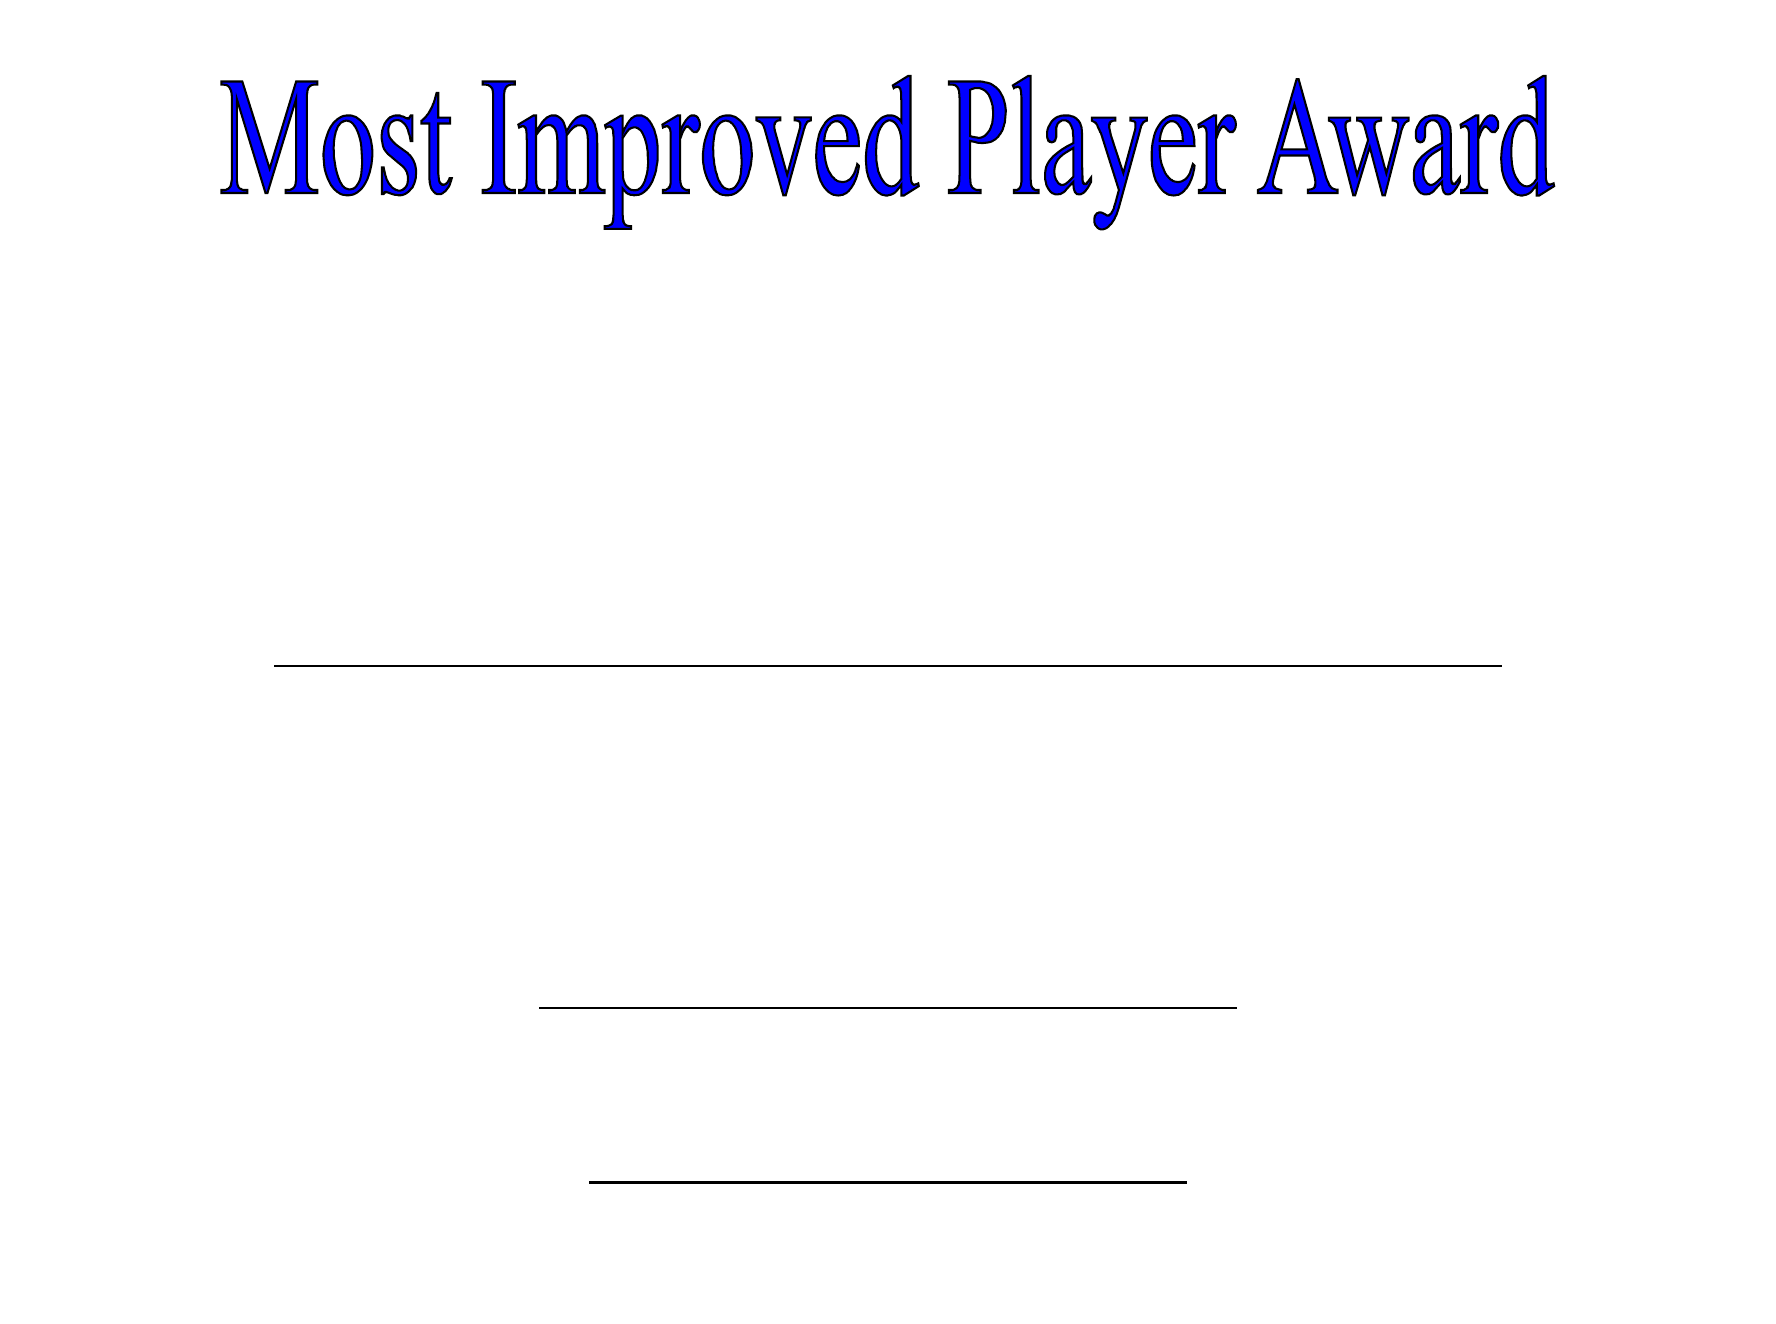 Player of the day certificate template choice image templates most improved certificate template gallery templates example most improved player award certificate free download this certificate yelopaper Images